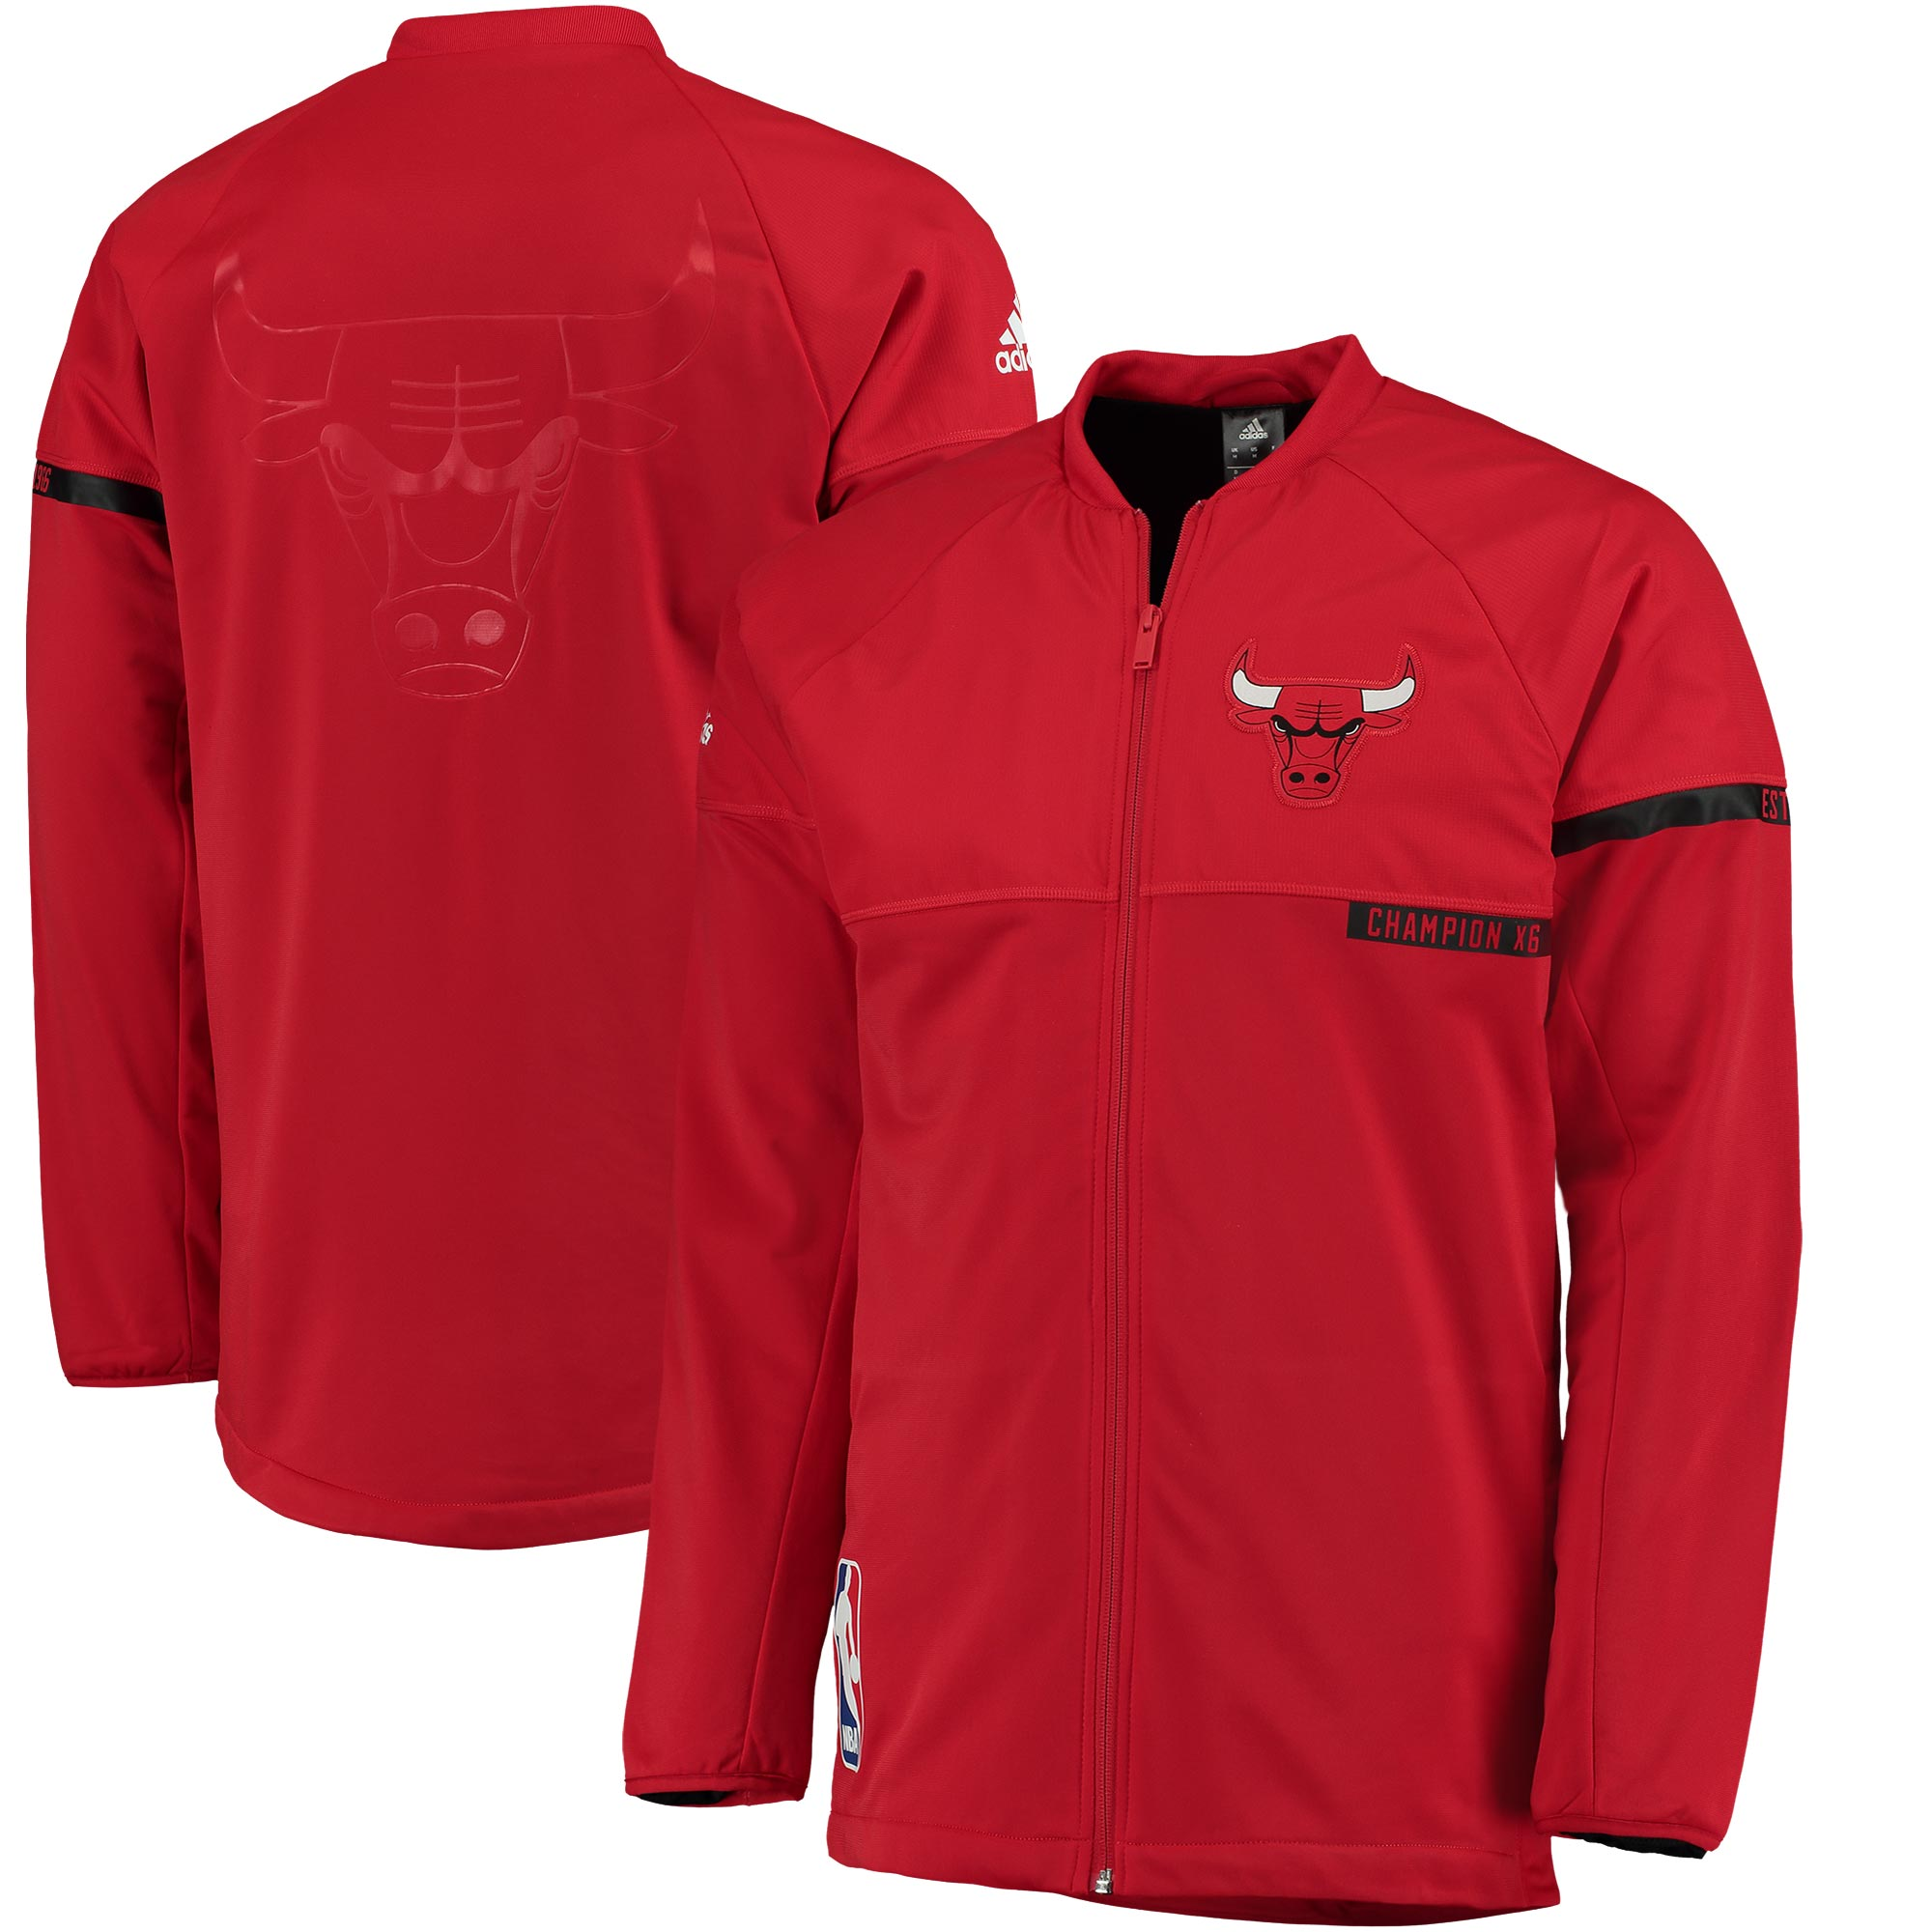 Chicago Bulls adidas 2016 On-Court Jacket - Red